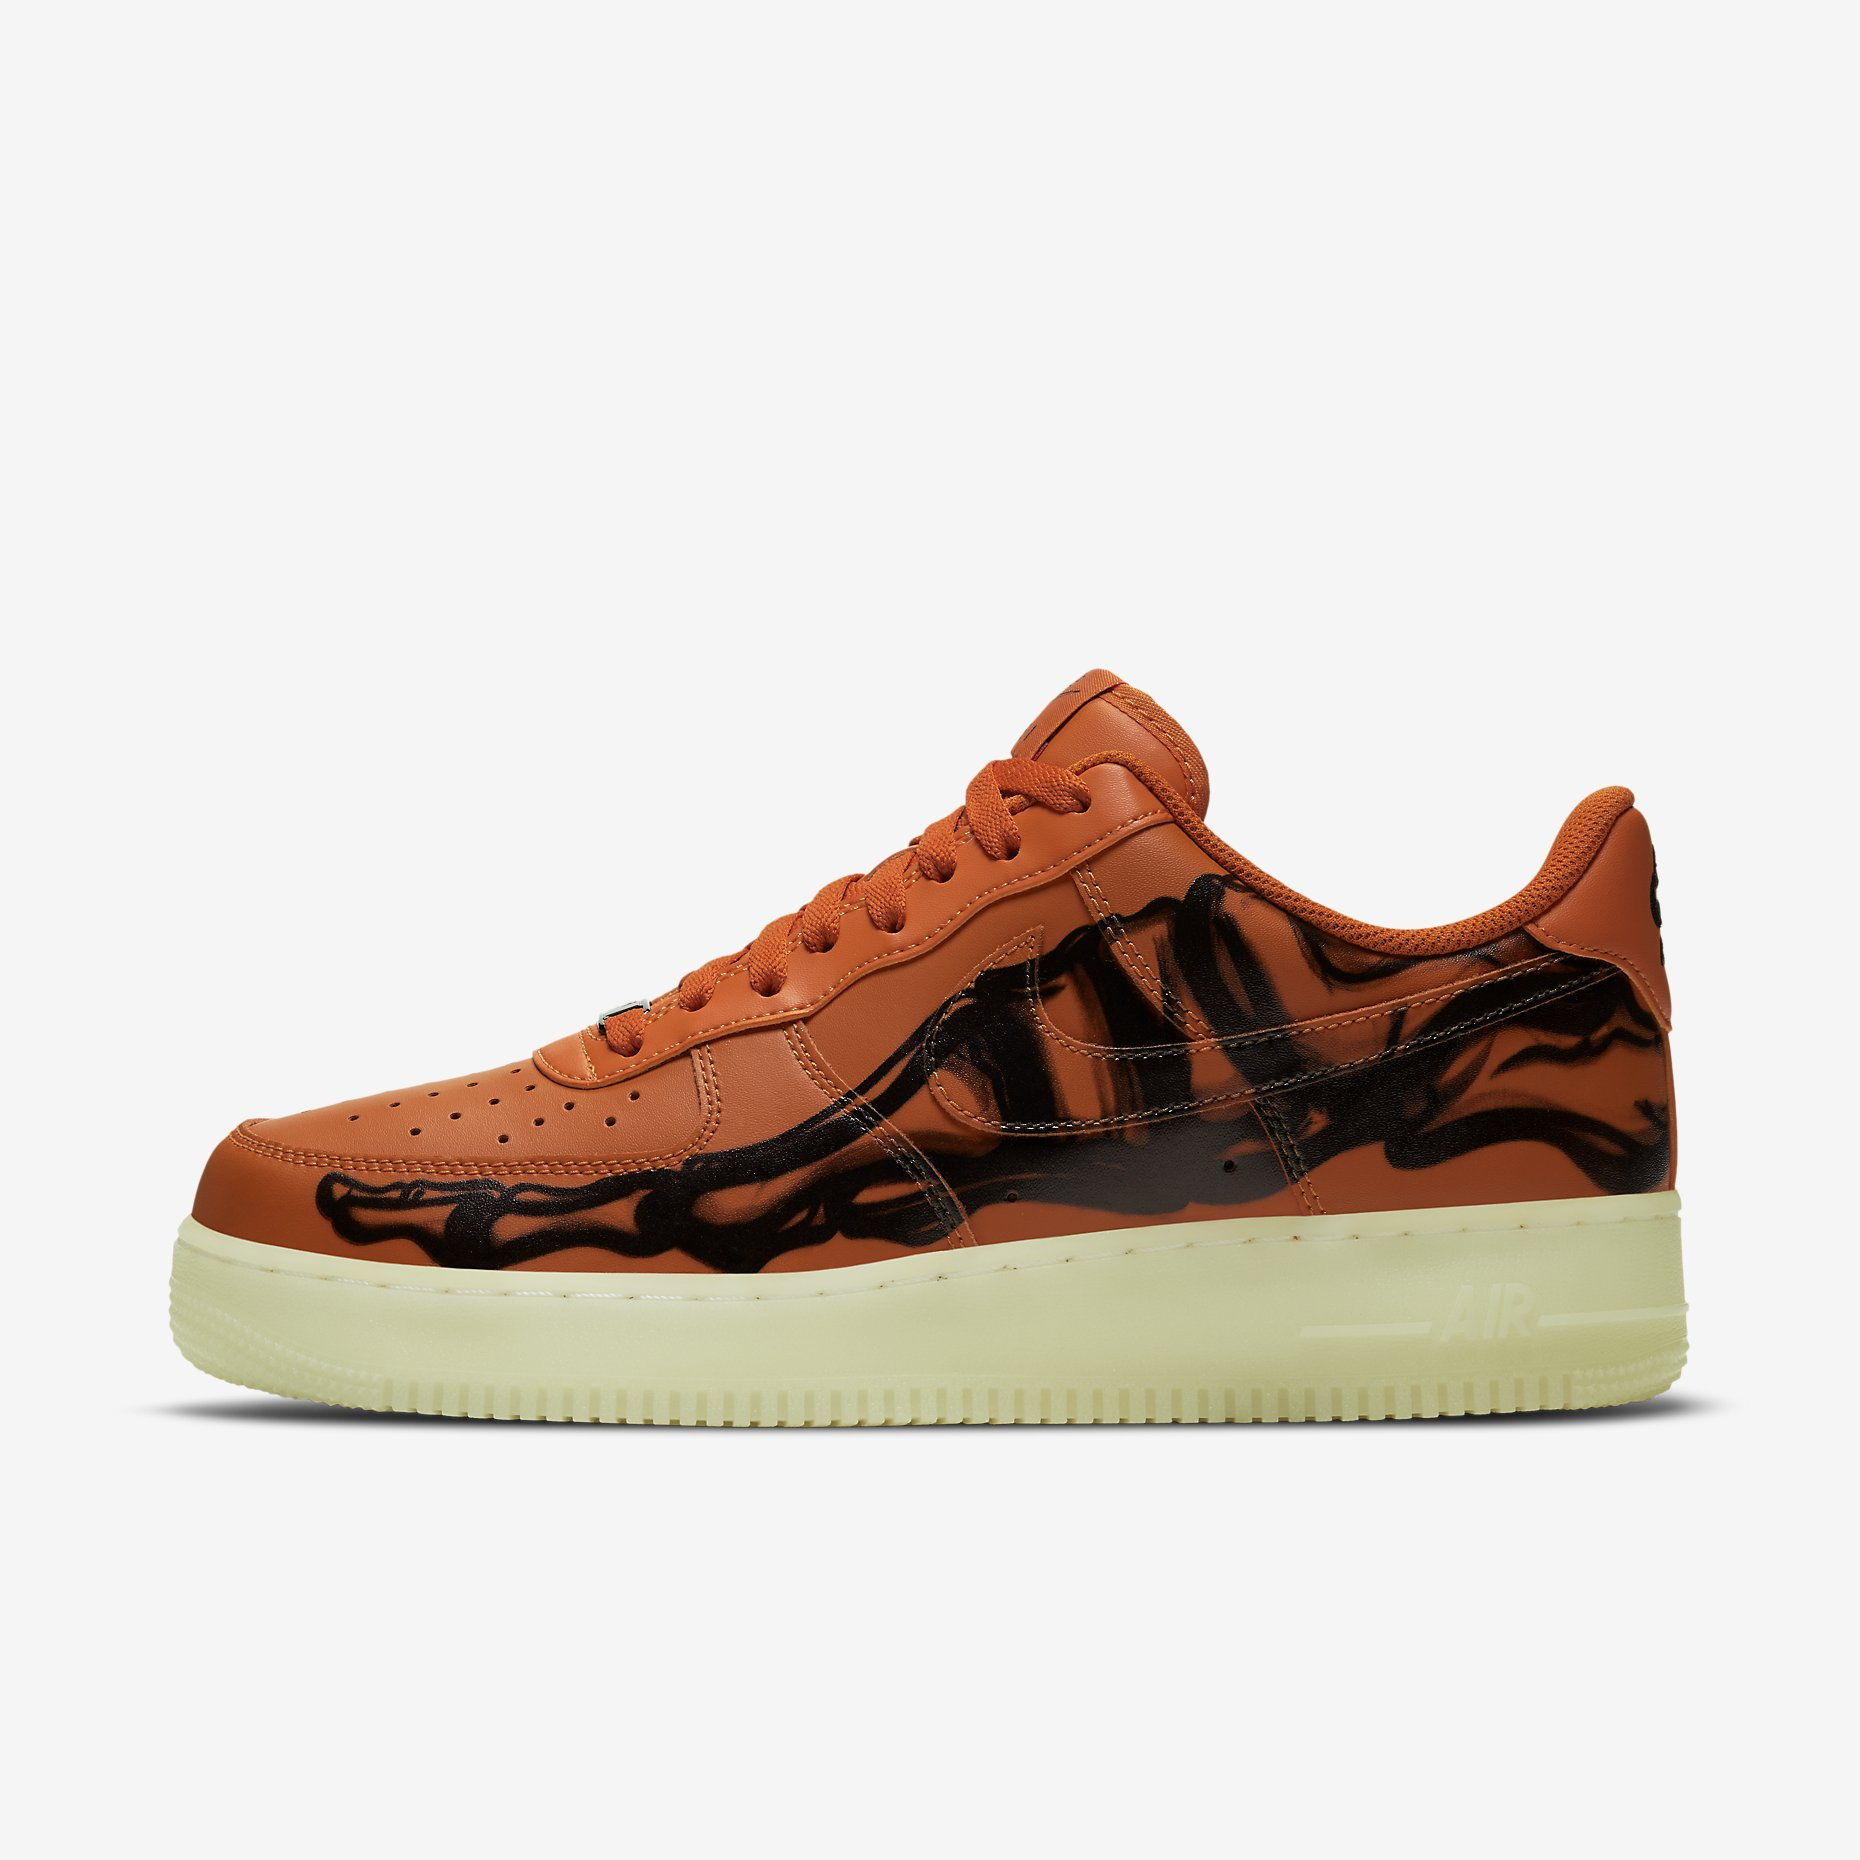 Nike Air Force 1 '07 Skeleton QS 'Orange'}